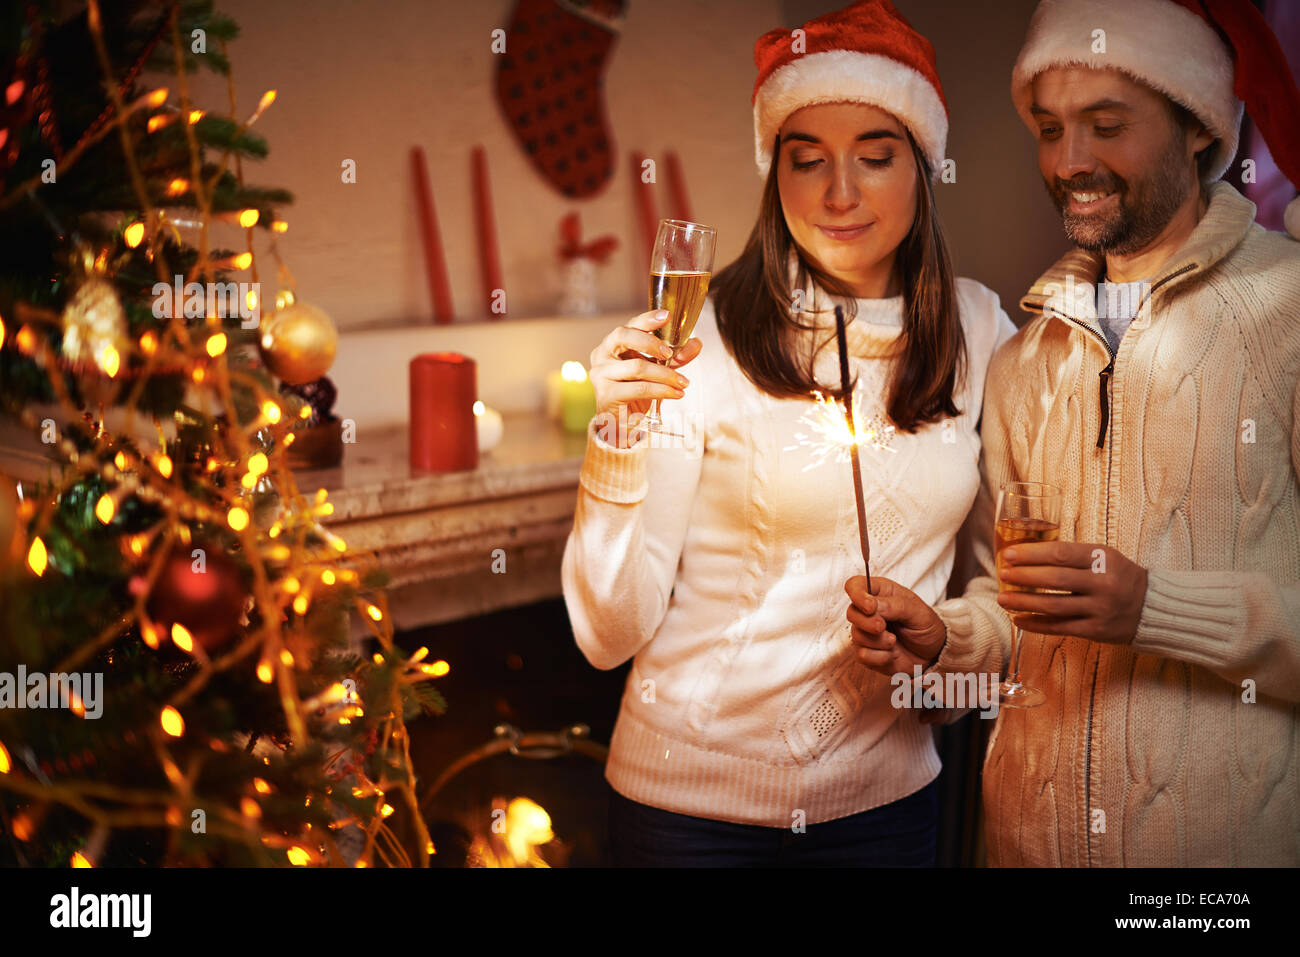 Santa man and woman with champagne looking at Bengal light on xmas night - Stock Image